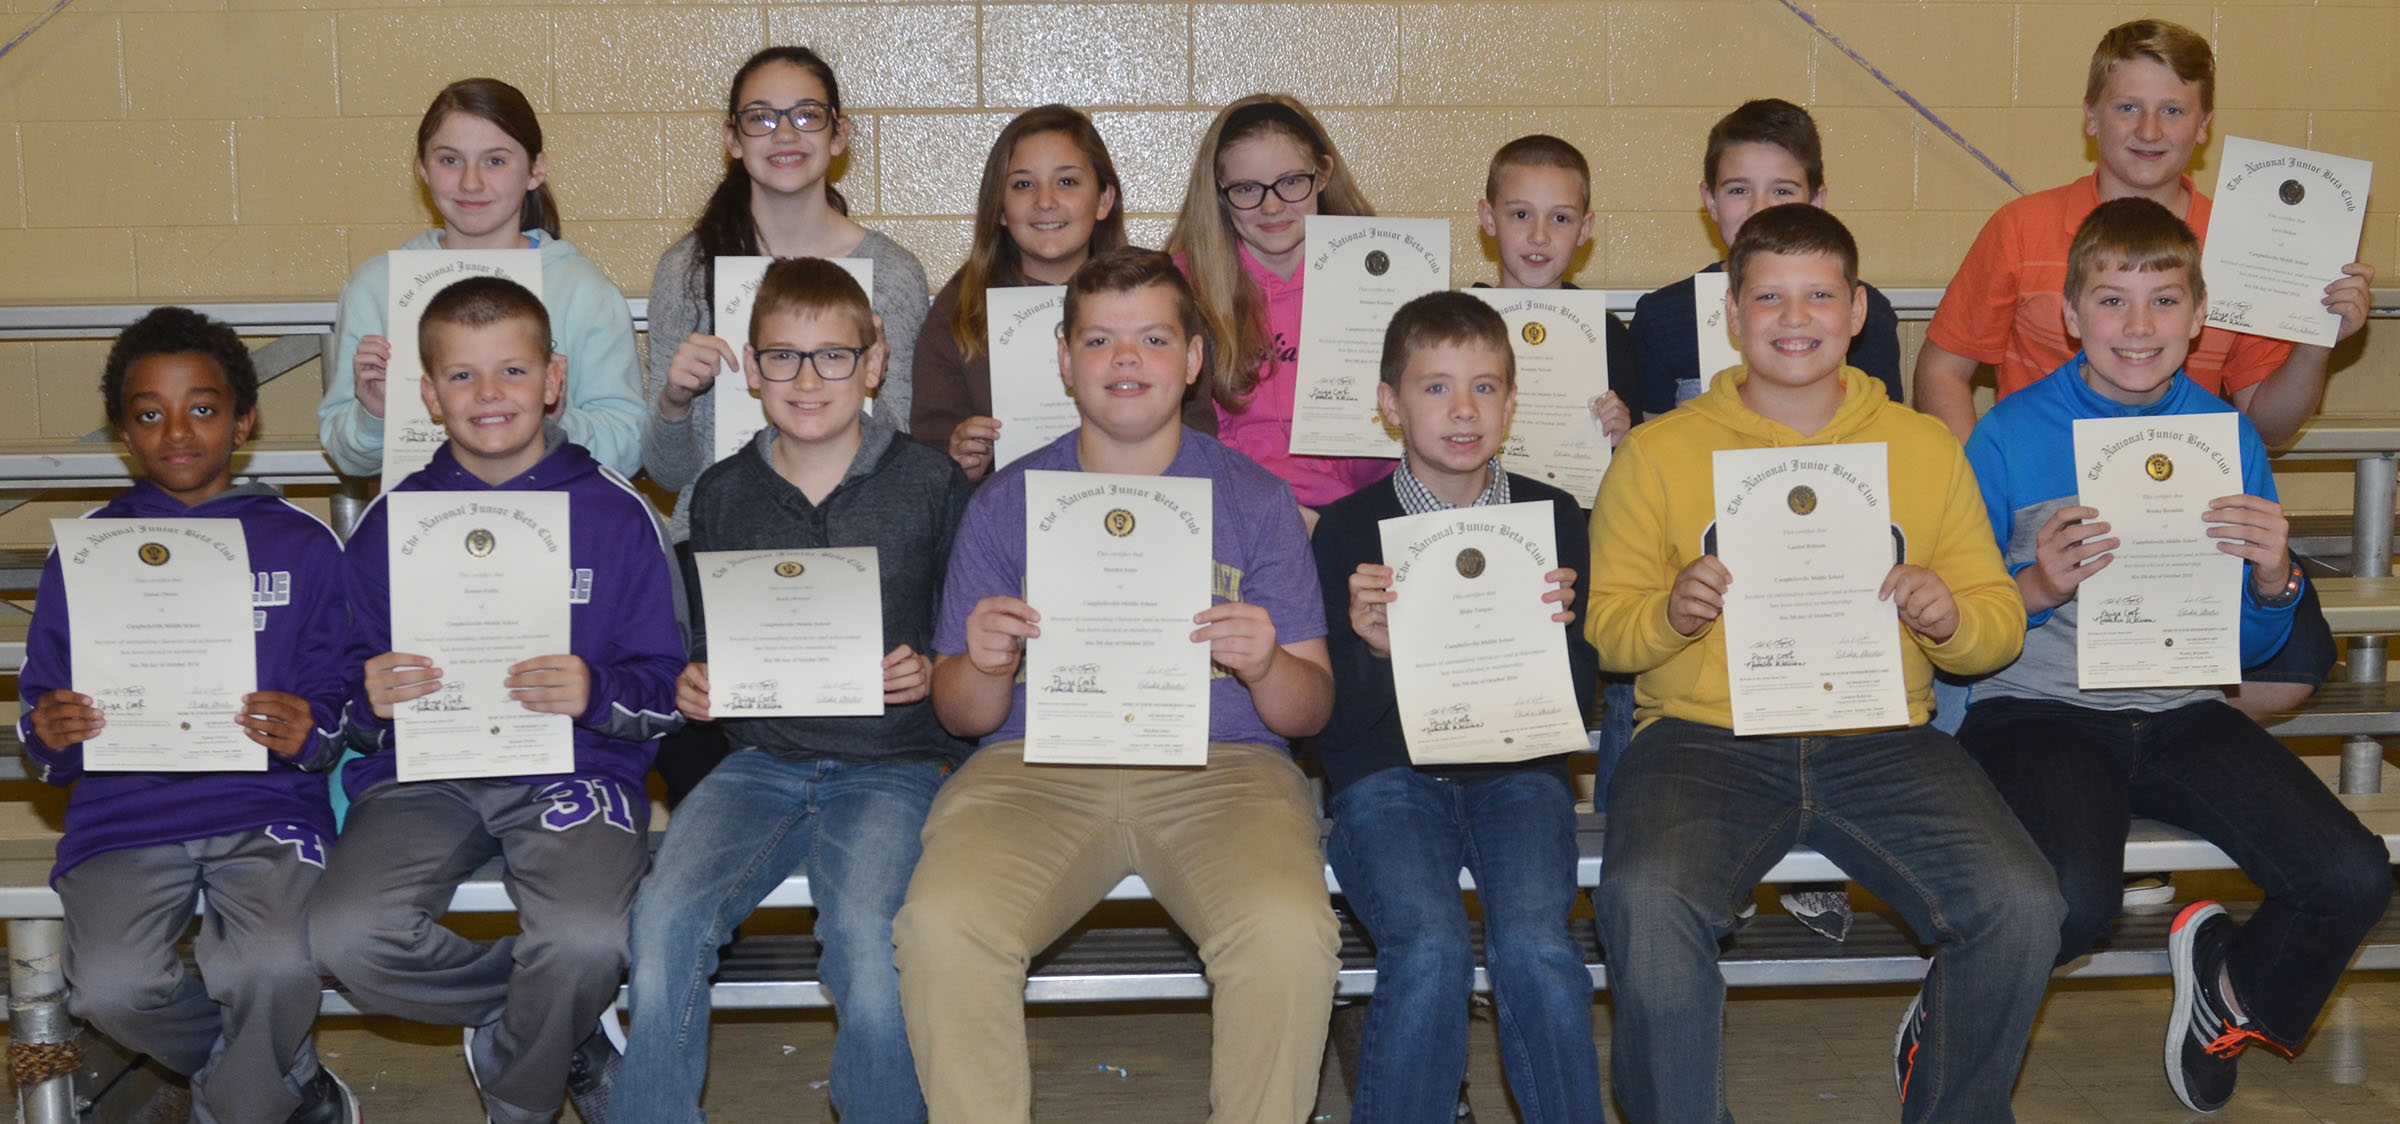 Beta members honored for advancing from the elementary level to the junior division are, from left, front, sixth-graders Zamar Owens, Konner Forbis, Brady Hoosier, Hayden Jones, Blake Tungate, Landon Robison and Wesley Reynolds. Back, Leigh Hicks, Mary Russell, Briana Davis, Whitney Frashure, Brandon Nelson, Bryce Newton and Levi Dicken. Absent from the photo are Chase Hord, Jacob Judd and Zavian McColley.